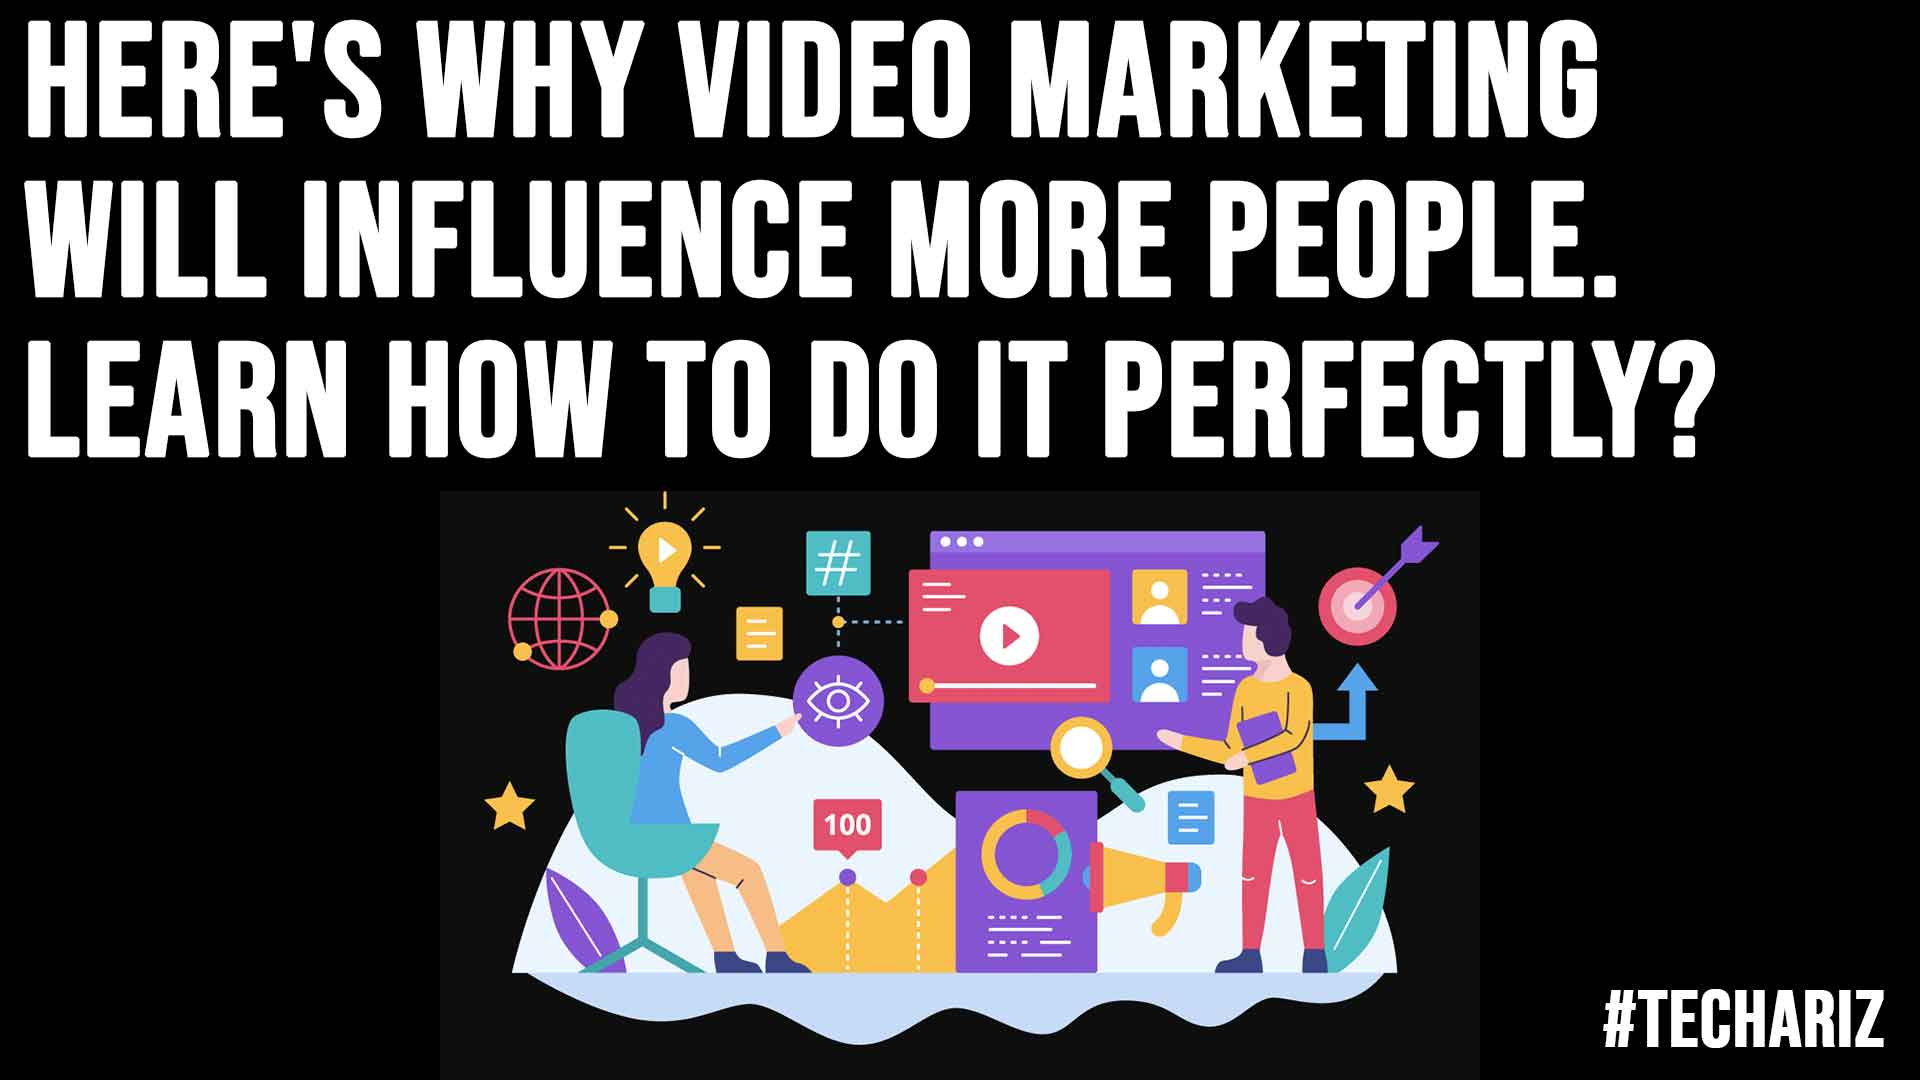 Heres Why Video Marketing Will Influence More People Learn How To Do It Perfectly